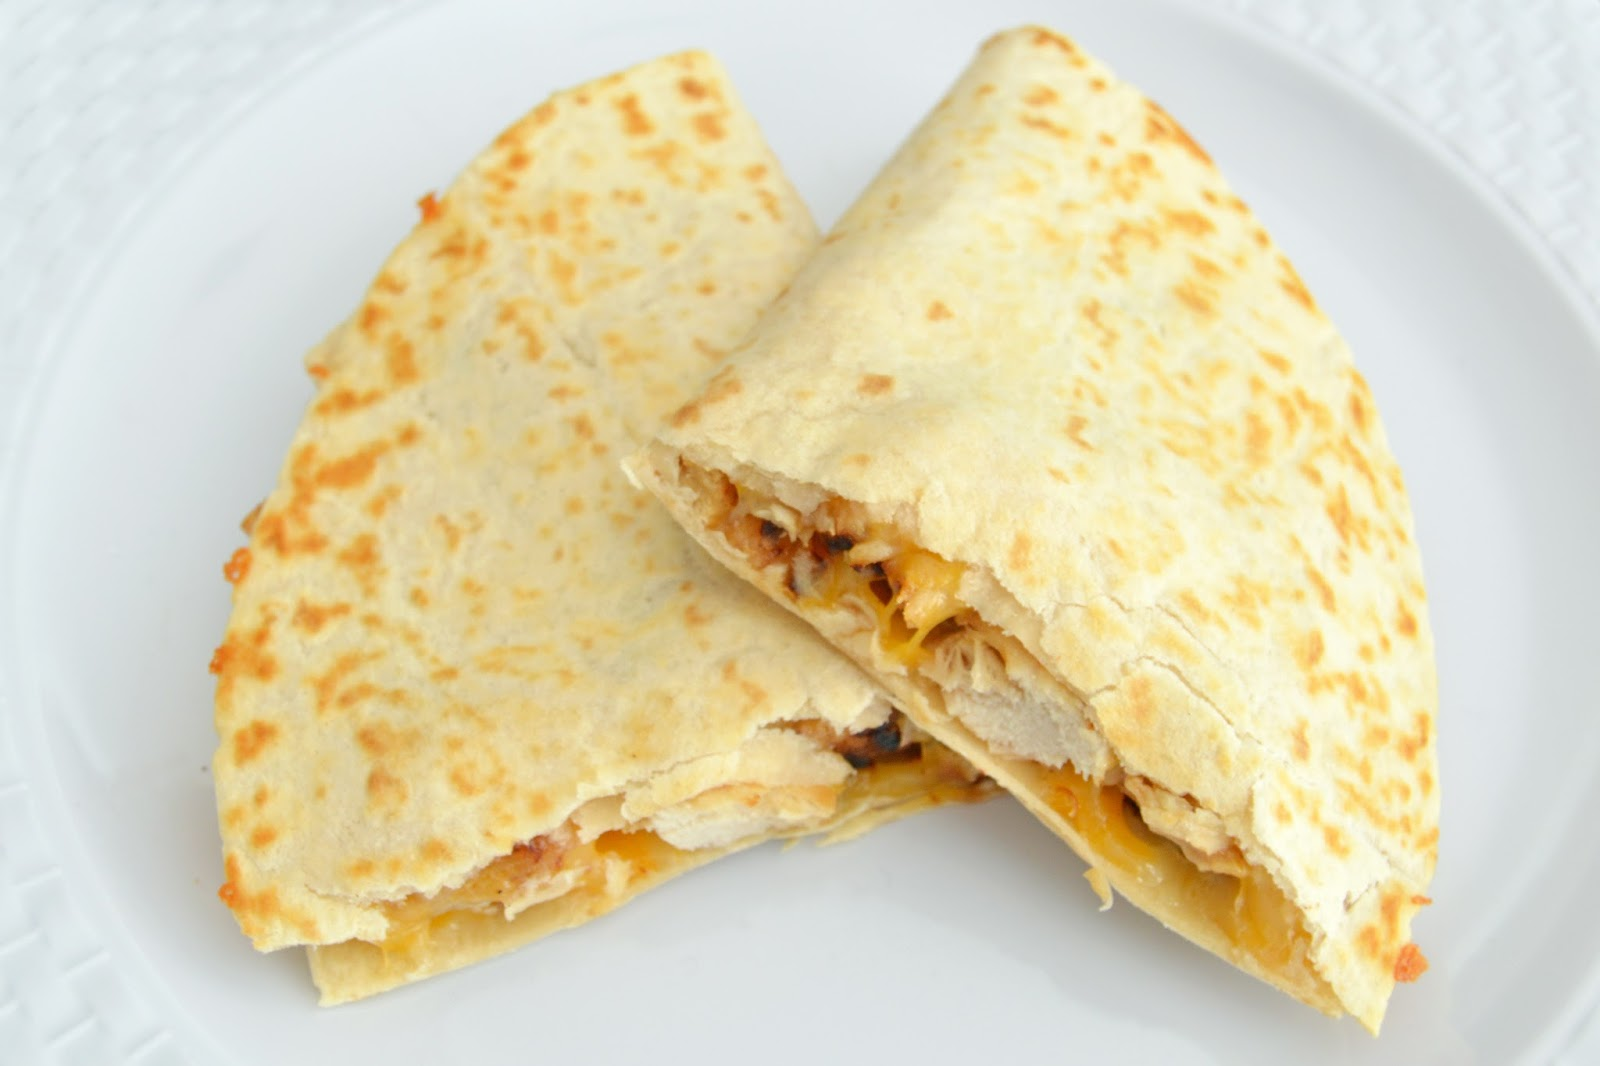 Chicken quesadilla.jpg